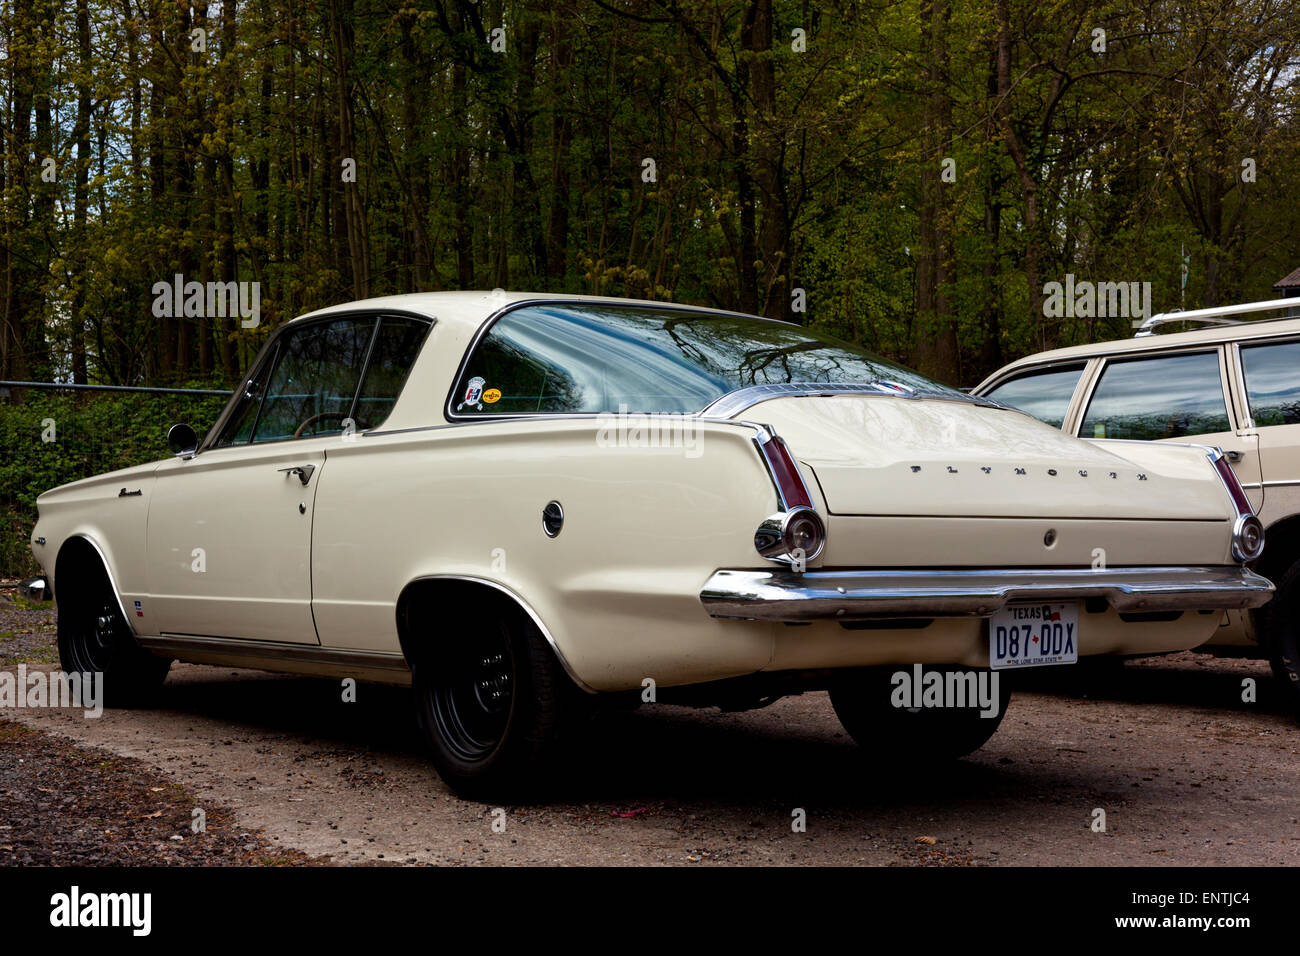 Vintage 1965 Plymouth Barracuda Fastback muscle car - Stock Image